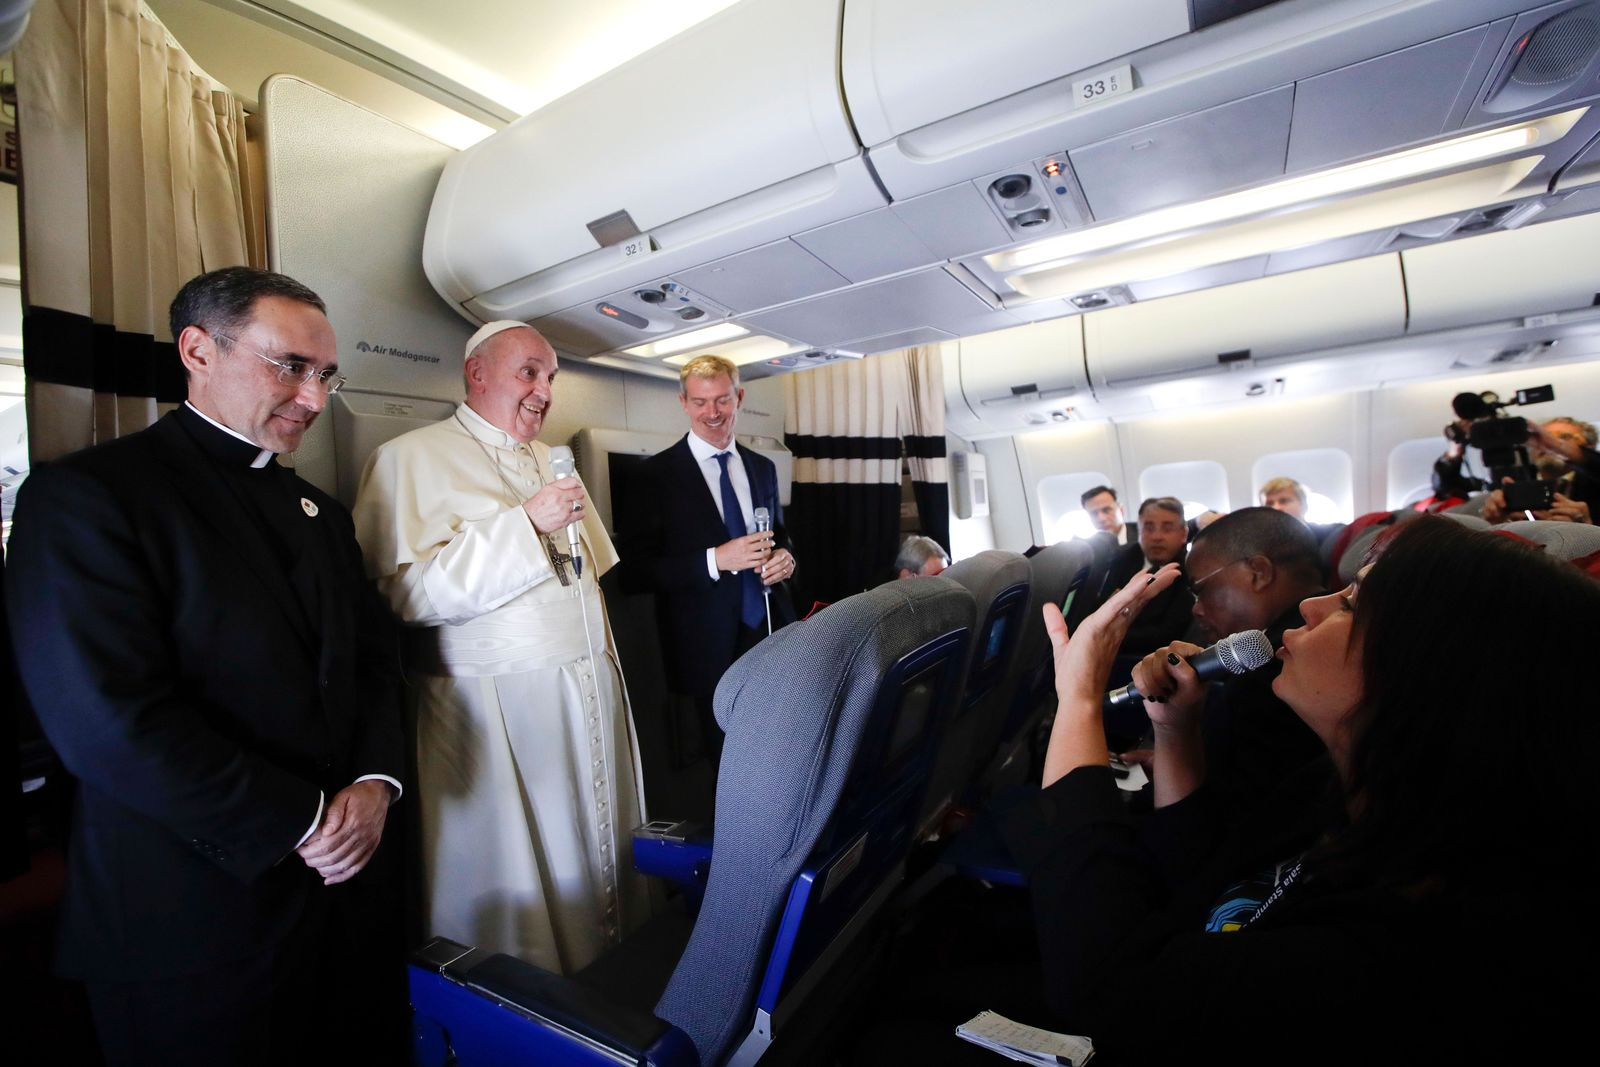 Pope Francis listens reporters questions during his flight from Antamanarivo to Rome, Tuesday, Sept. 10, 2019, after his seven-day pastoral trip to Mozambique, Madagascar, and Mauritius. (AP Photo/Alessandra Tarantino)